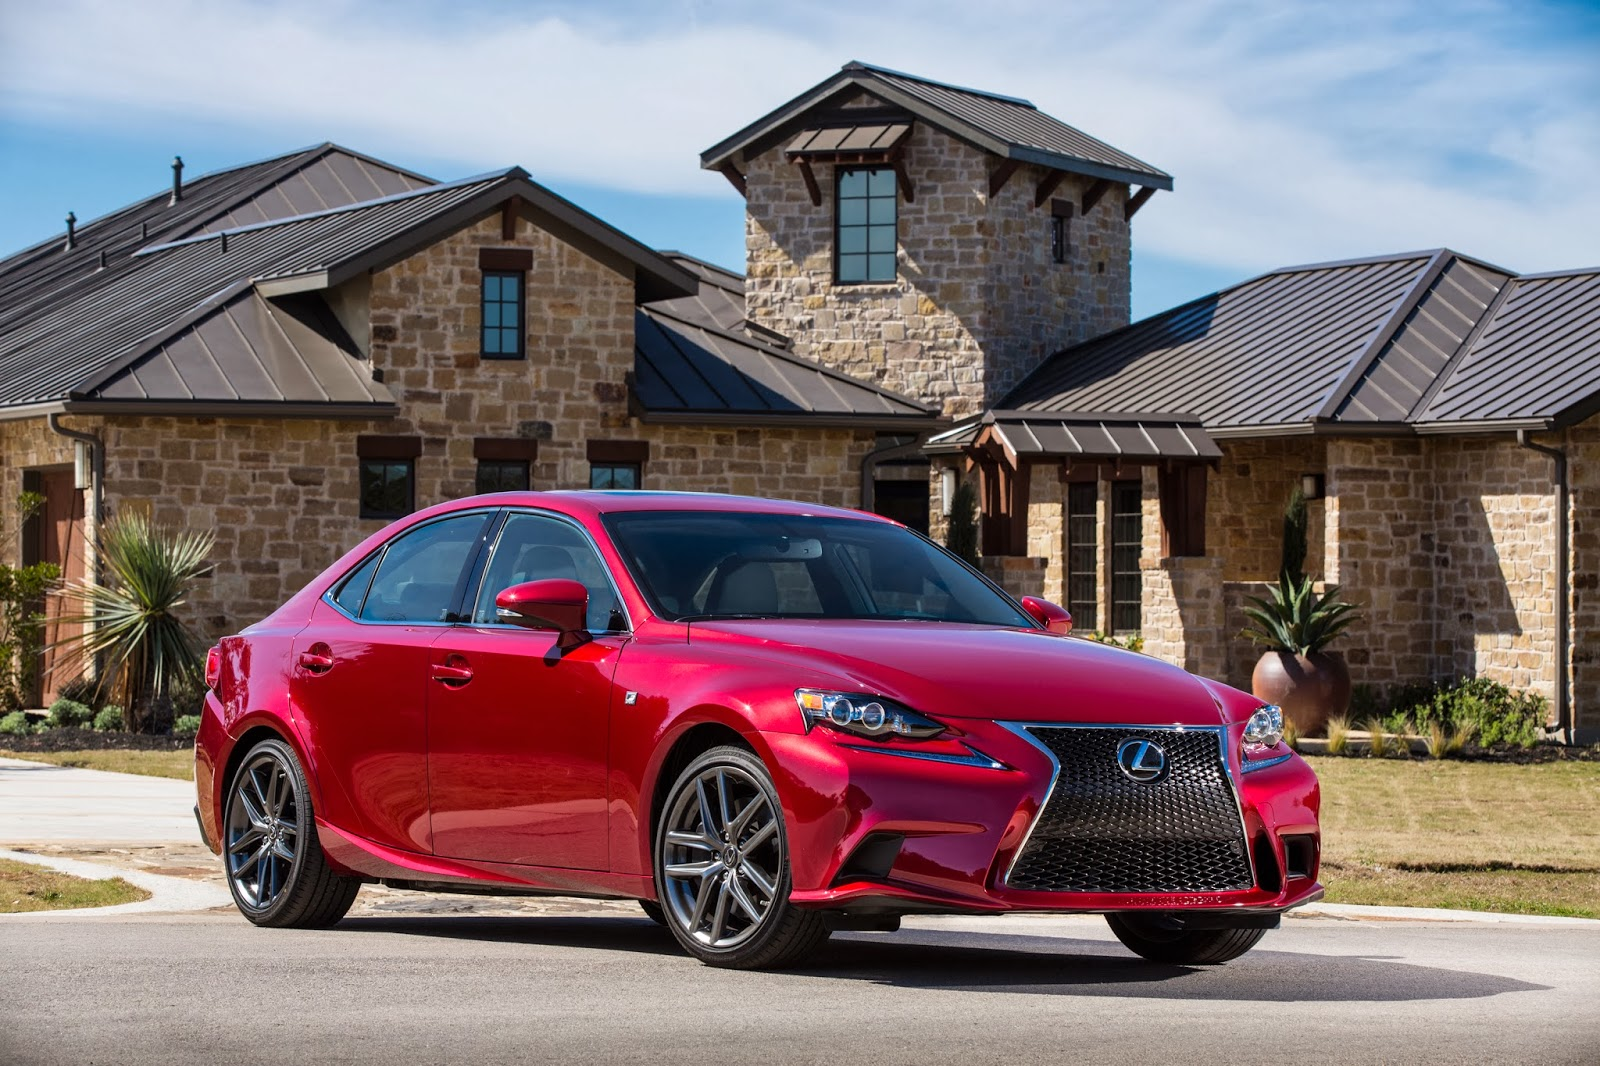 Front three-quarters view of the 2014 Lexus IS 350 F-Sport